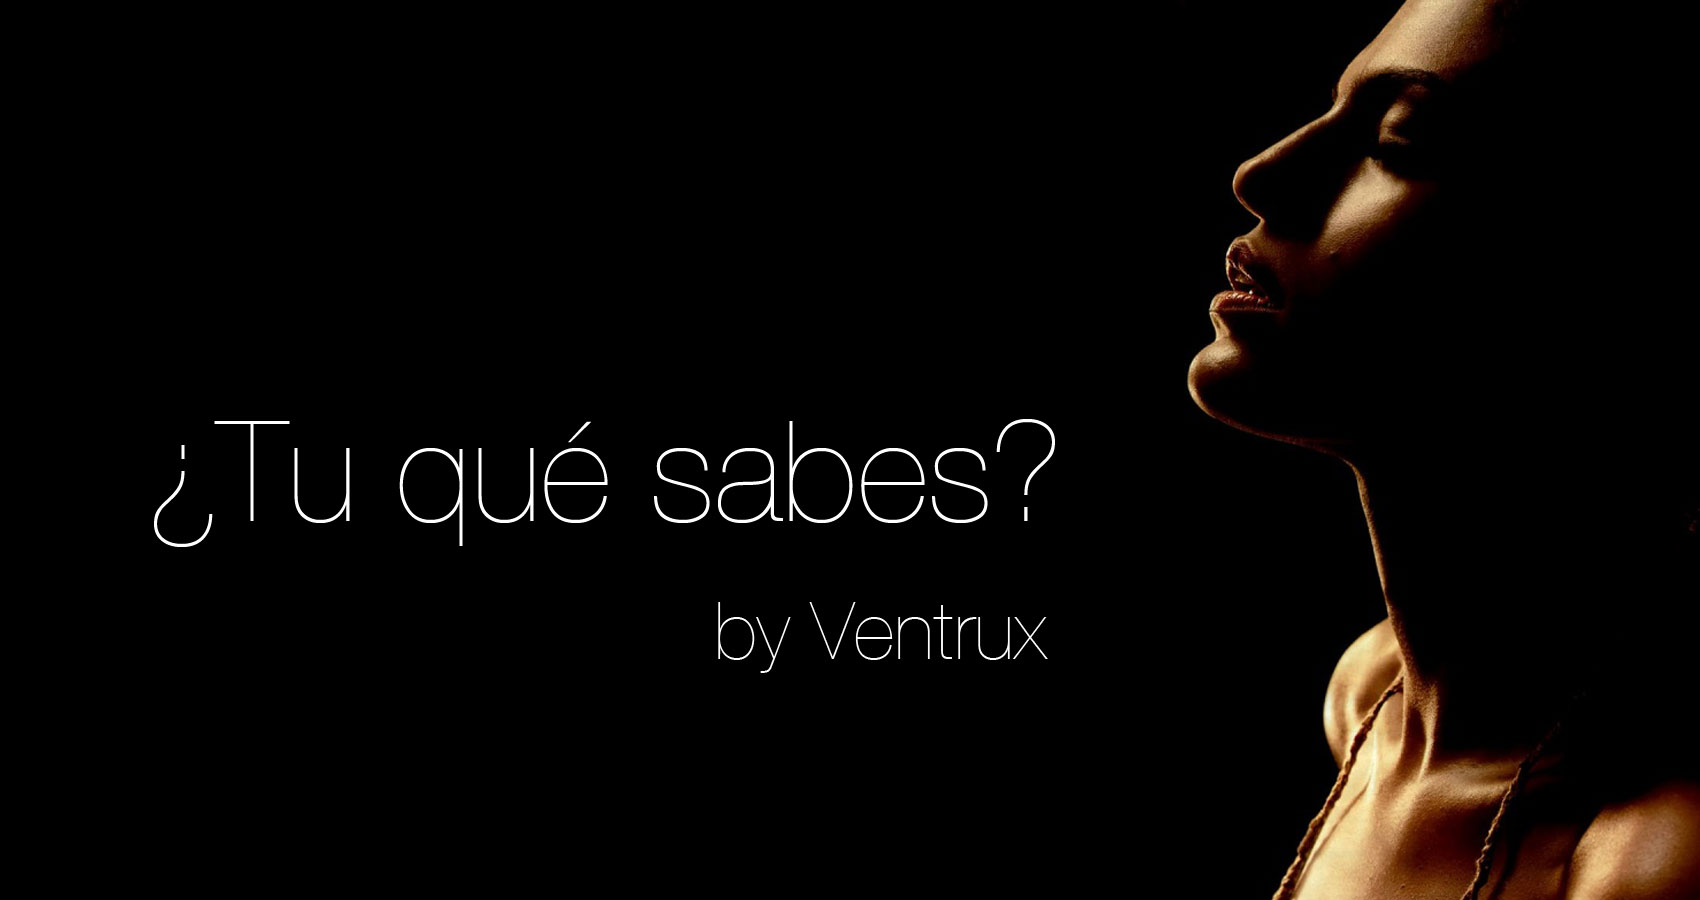 ¿Tu qué sabes? written by Ventrux at Spillwords.com